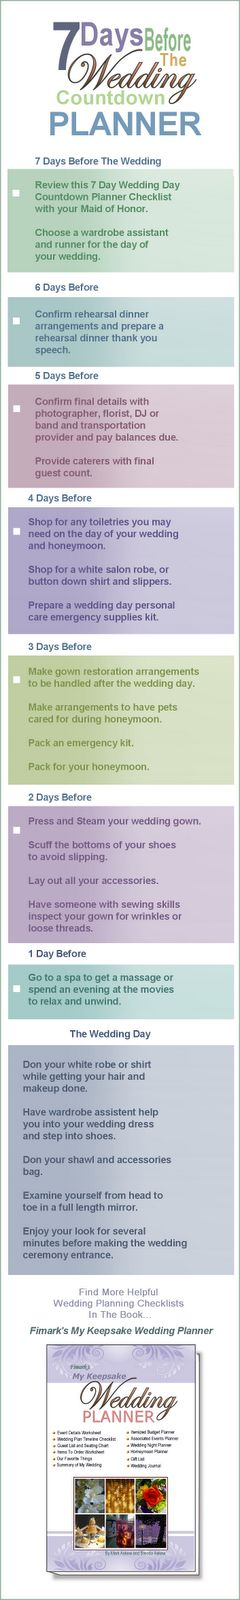 195 best images about Wedding Budget \ Planners on Pinterest - wedding planning checklist